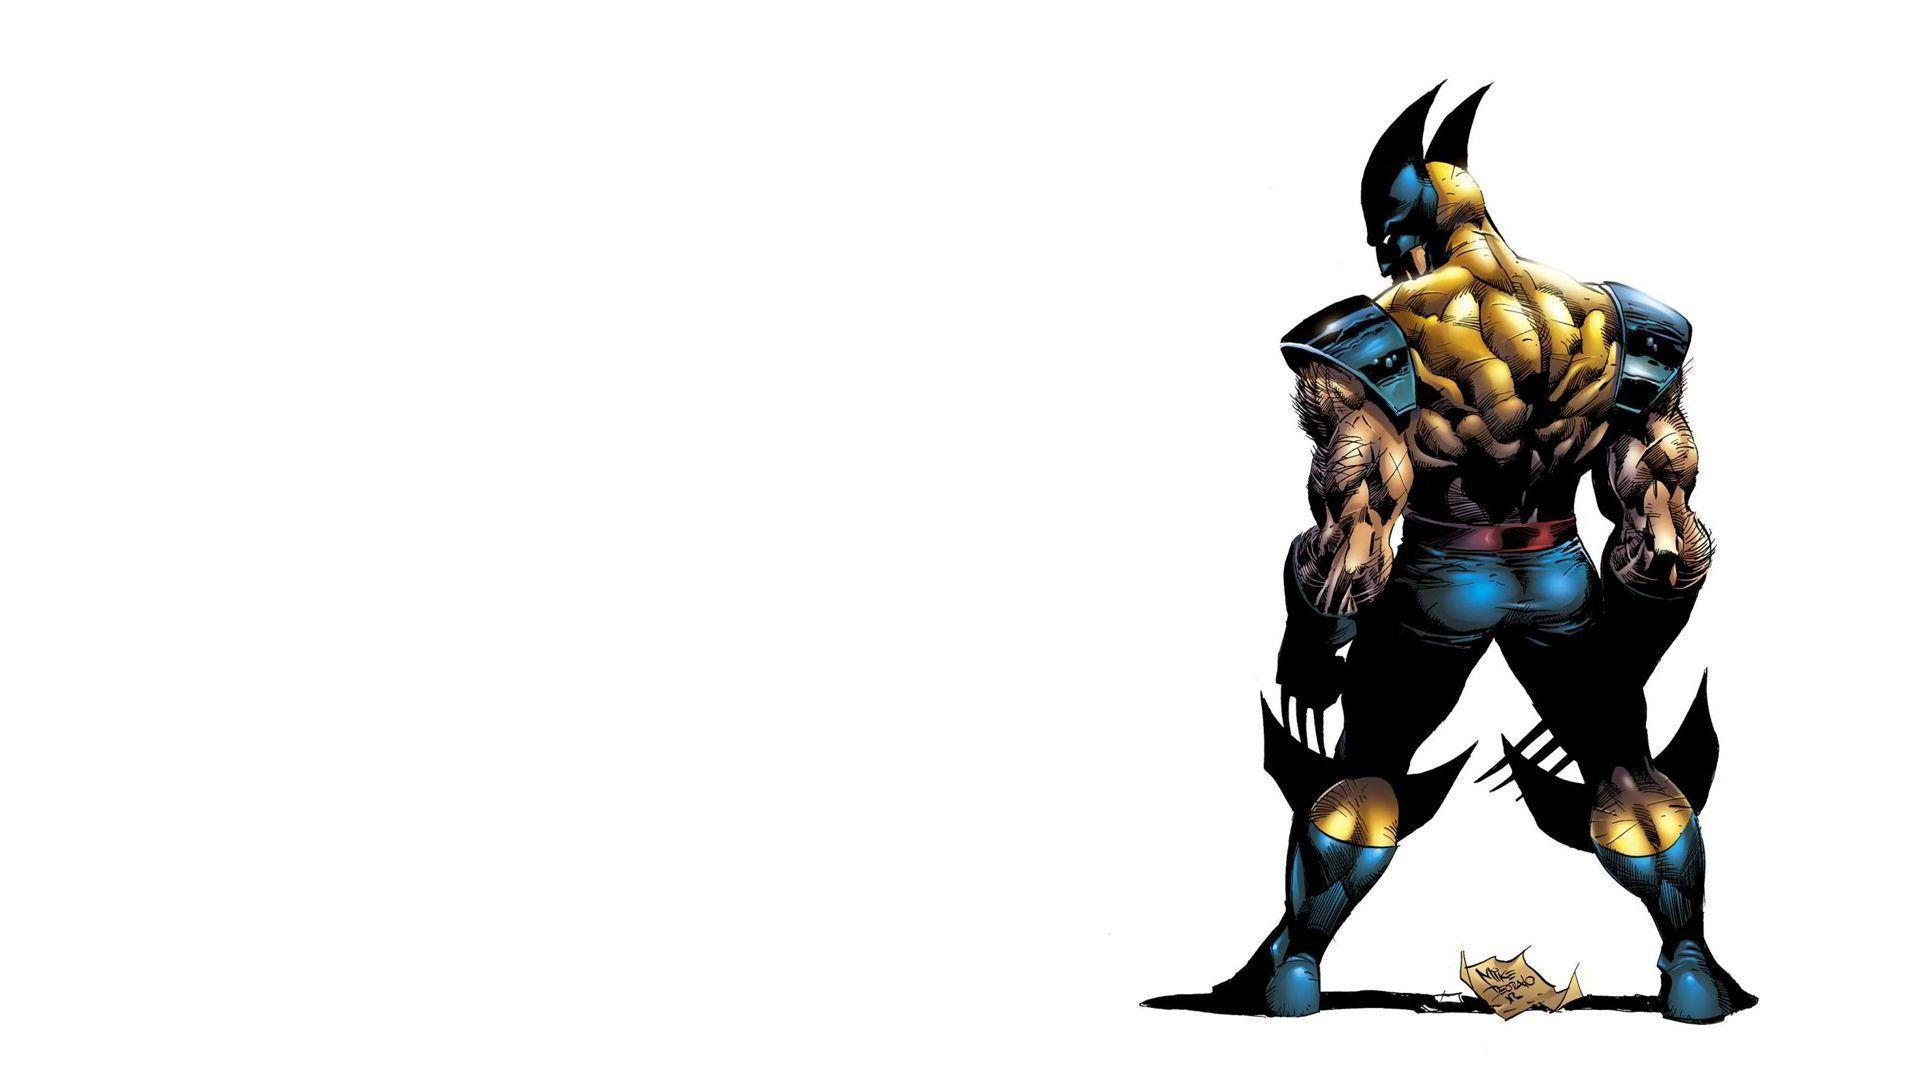 wolverine wallpaper | wolverine wallpaper - Part 2